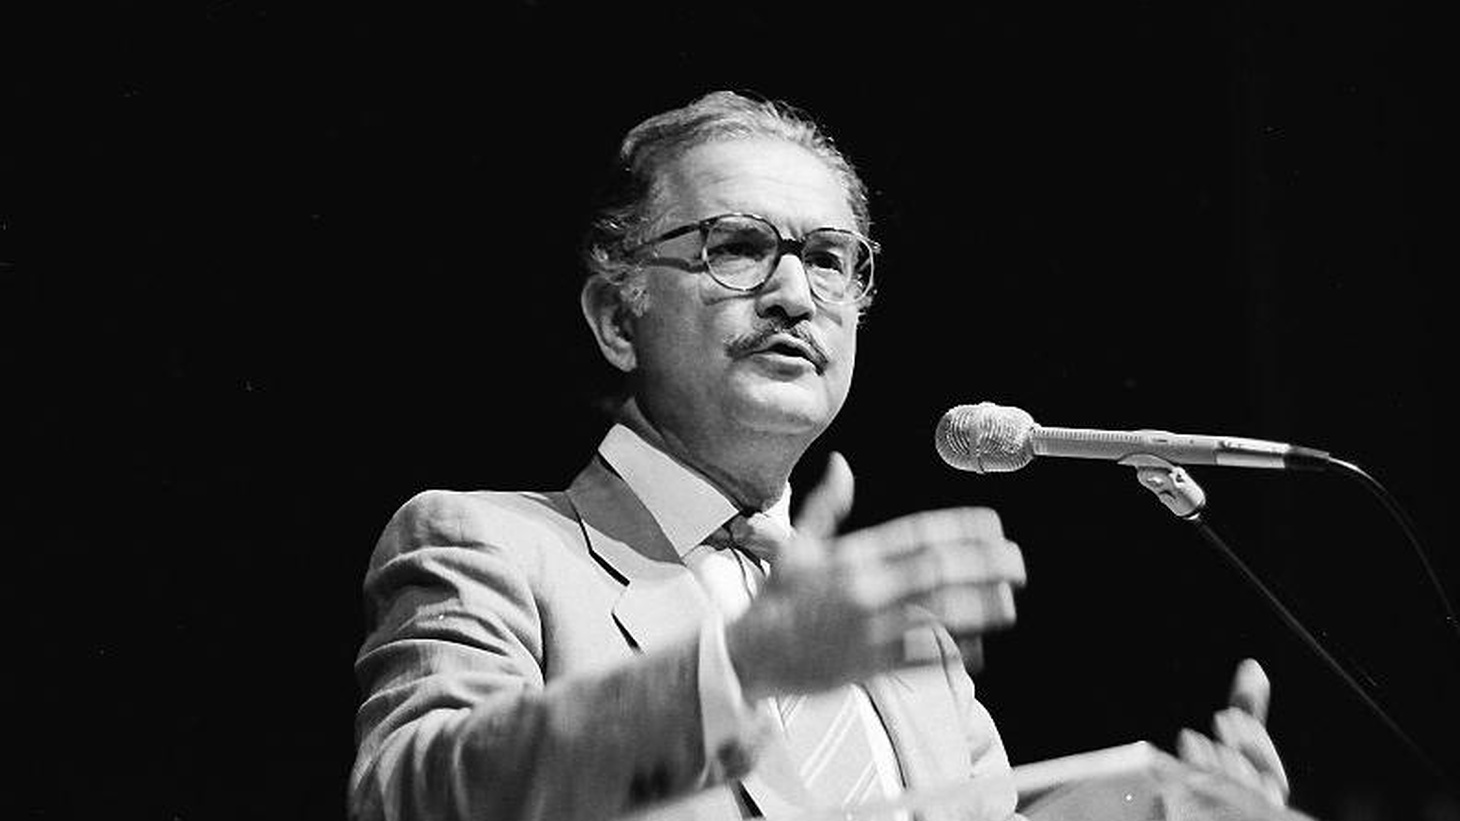 The Years with Laura Díaz   (Farrar, Straus & Giroux)  Mexico's foremost living writer, Carlos Fuentes, talks about the male and female perspectives in his work.  His famous character Artemio Cruz was, he claims, a critique of machismo.  It is a woman, Laura D---, who presides over his new novel...